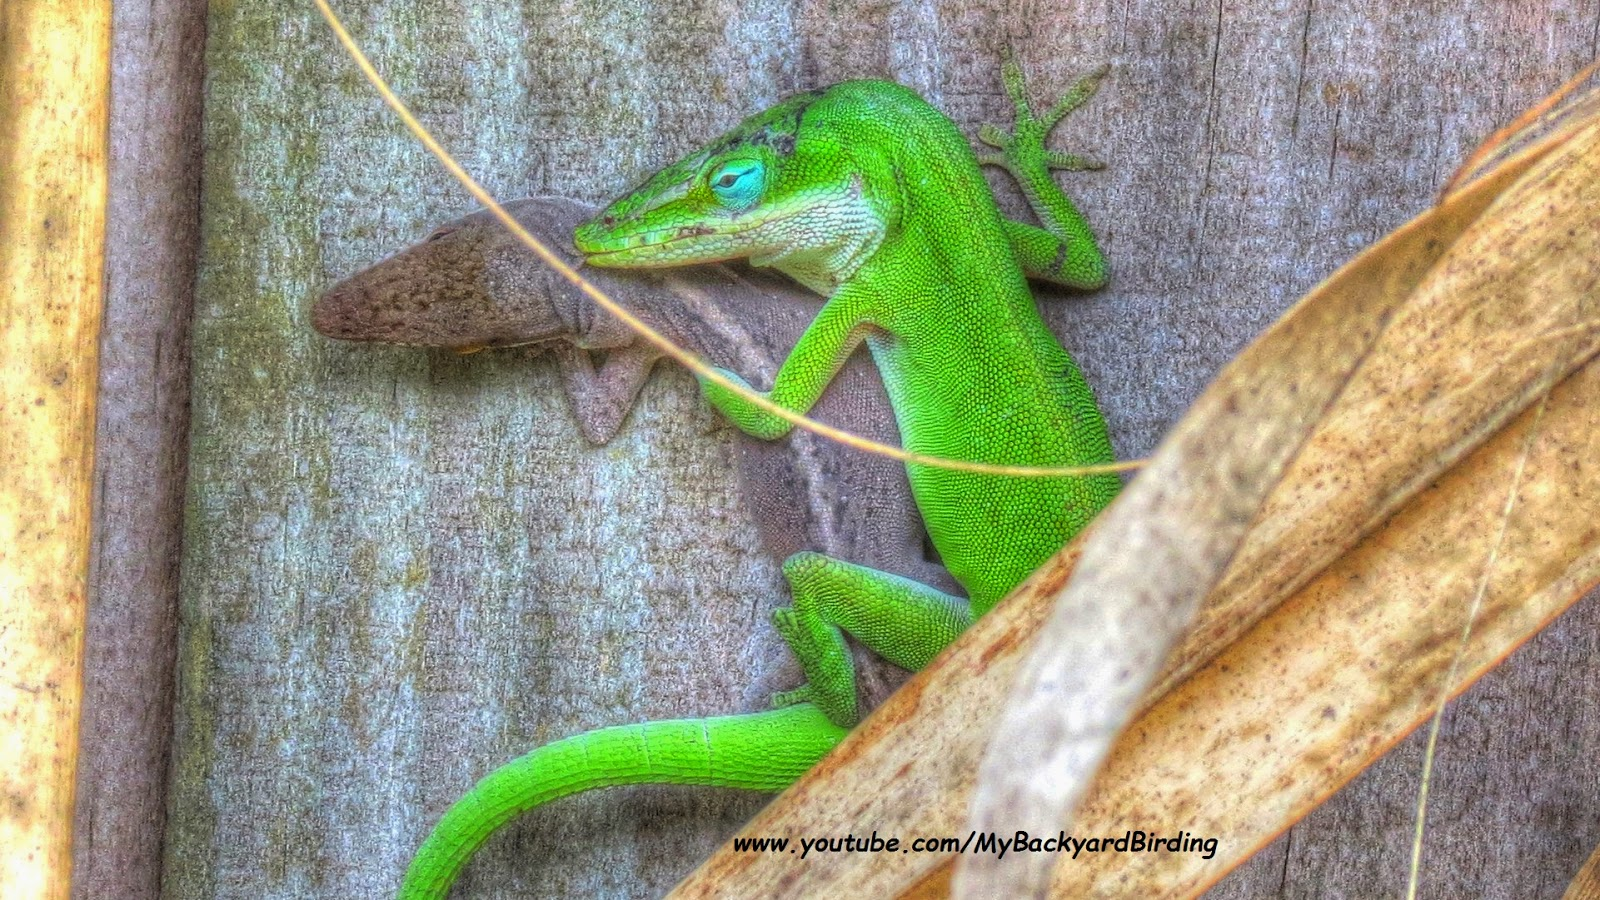 Green Anole Lizards Mating and Changing Color